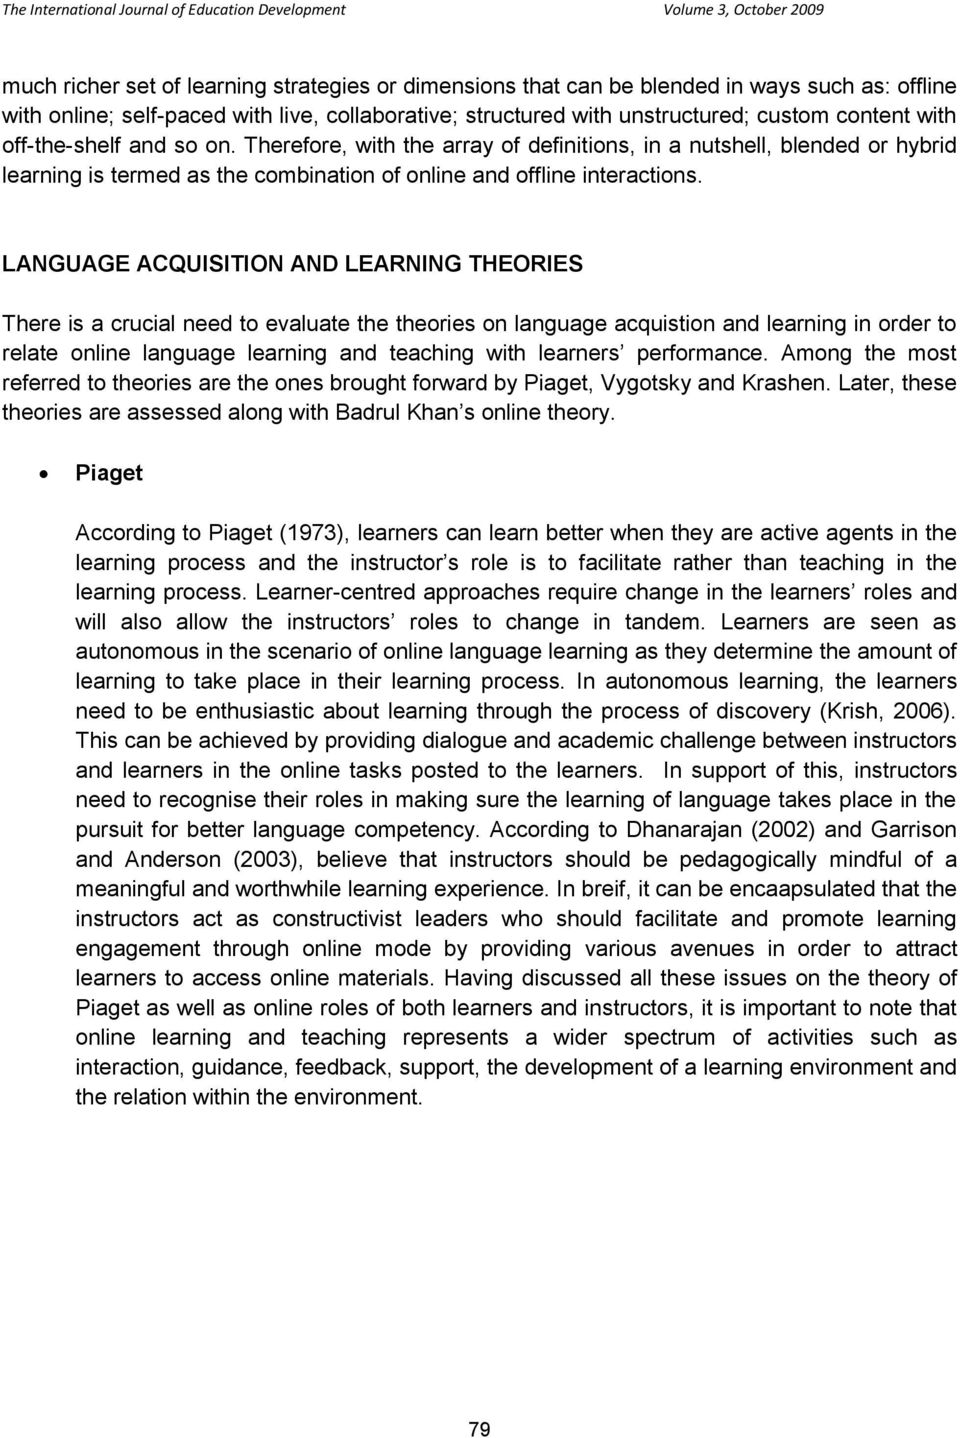 LANGUAGE ACQUISITION AND LEARNING THEORIES There is a crucial need to evaluate the theories on language acquistion and learning in order to relate online language learning and teaching with learners